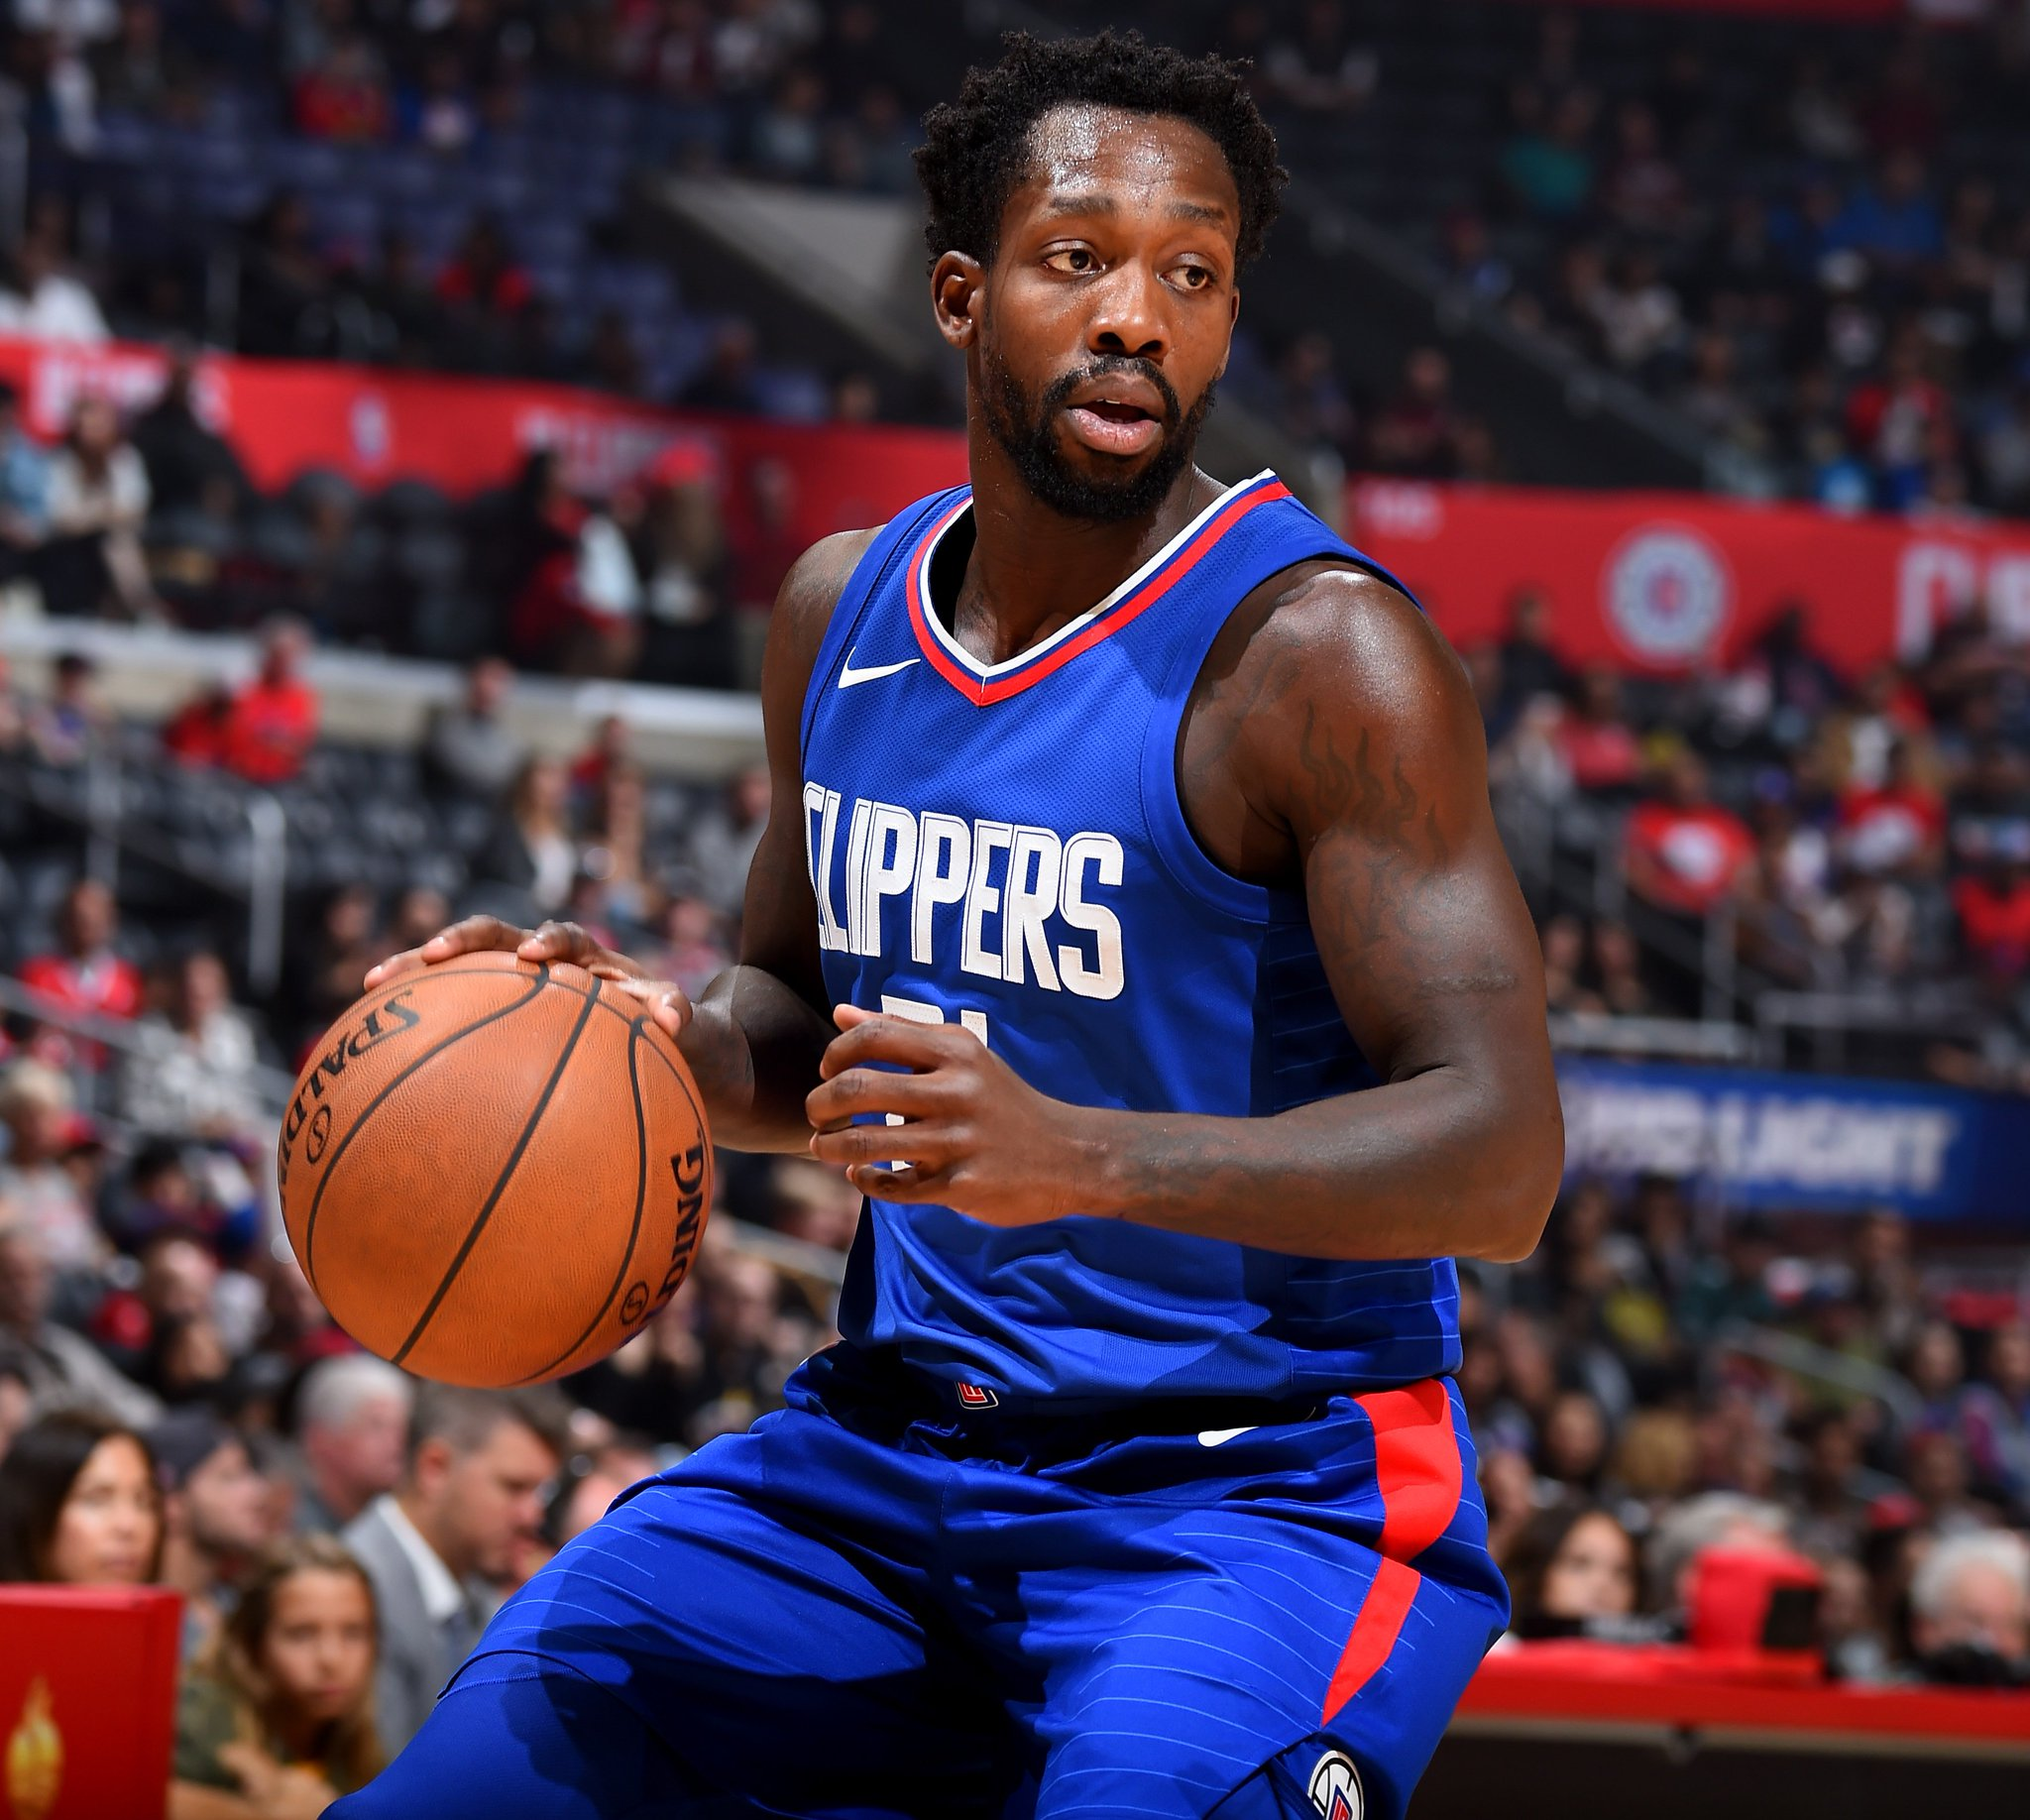 Join us in wishing @patbev21 of the @LAClippers a HAPPY 30th BIRTHDAY!   #NBABDAY #ItTakesEverything https://t.co/P6TObzMzOC